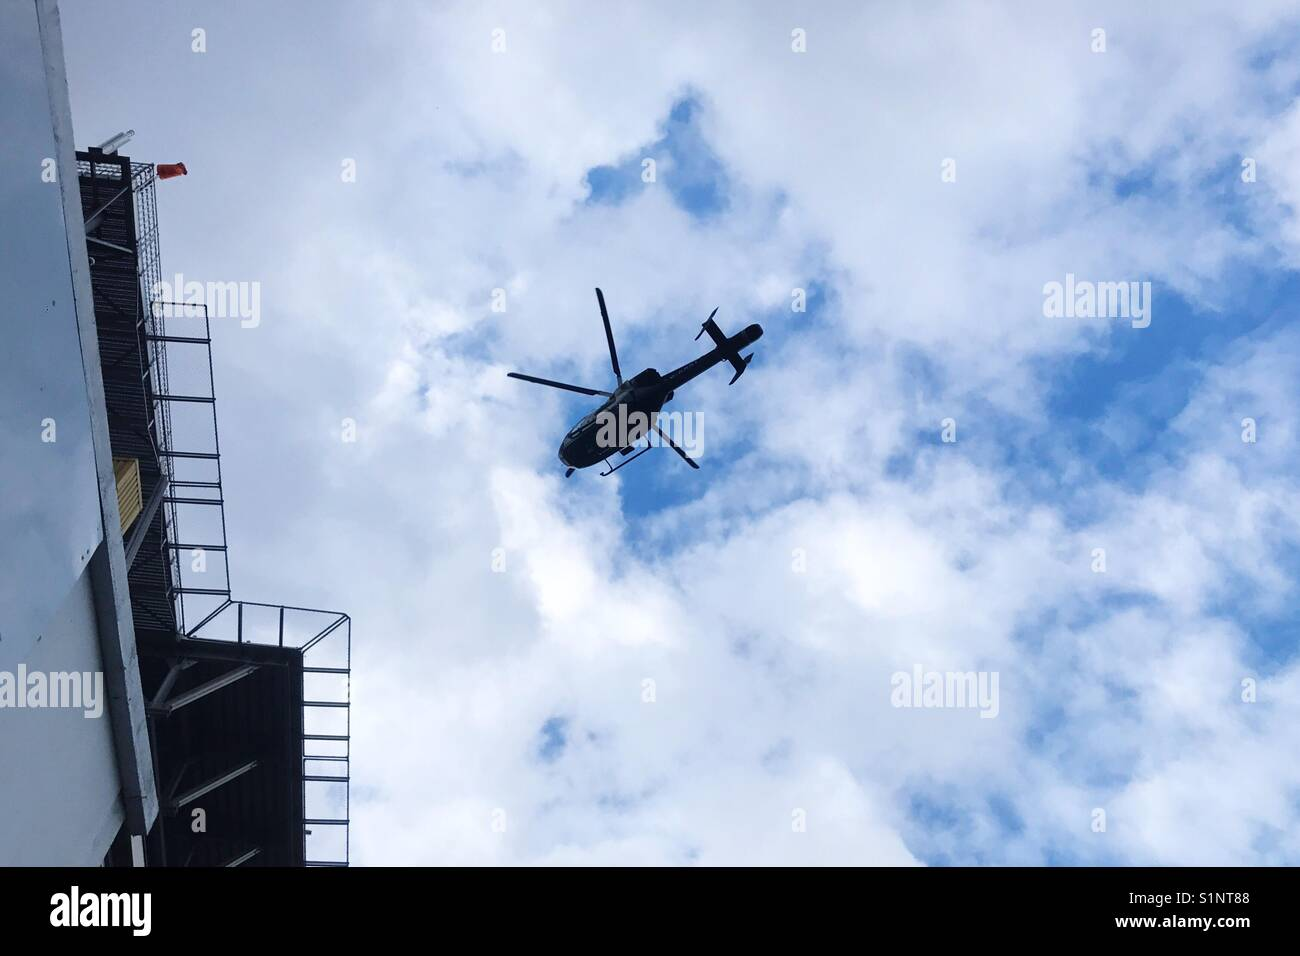 Helicopter in London - Stock Image